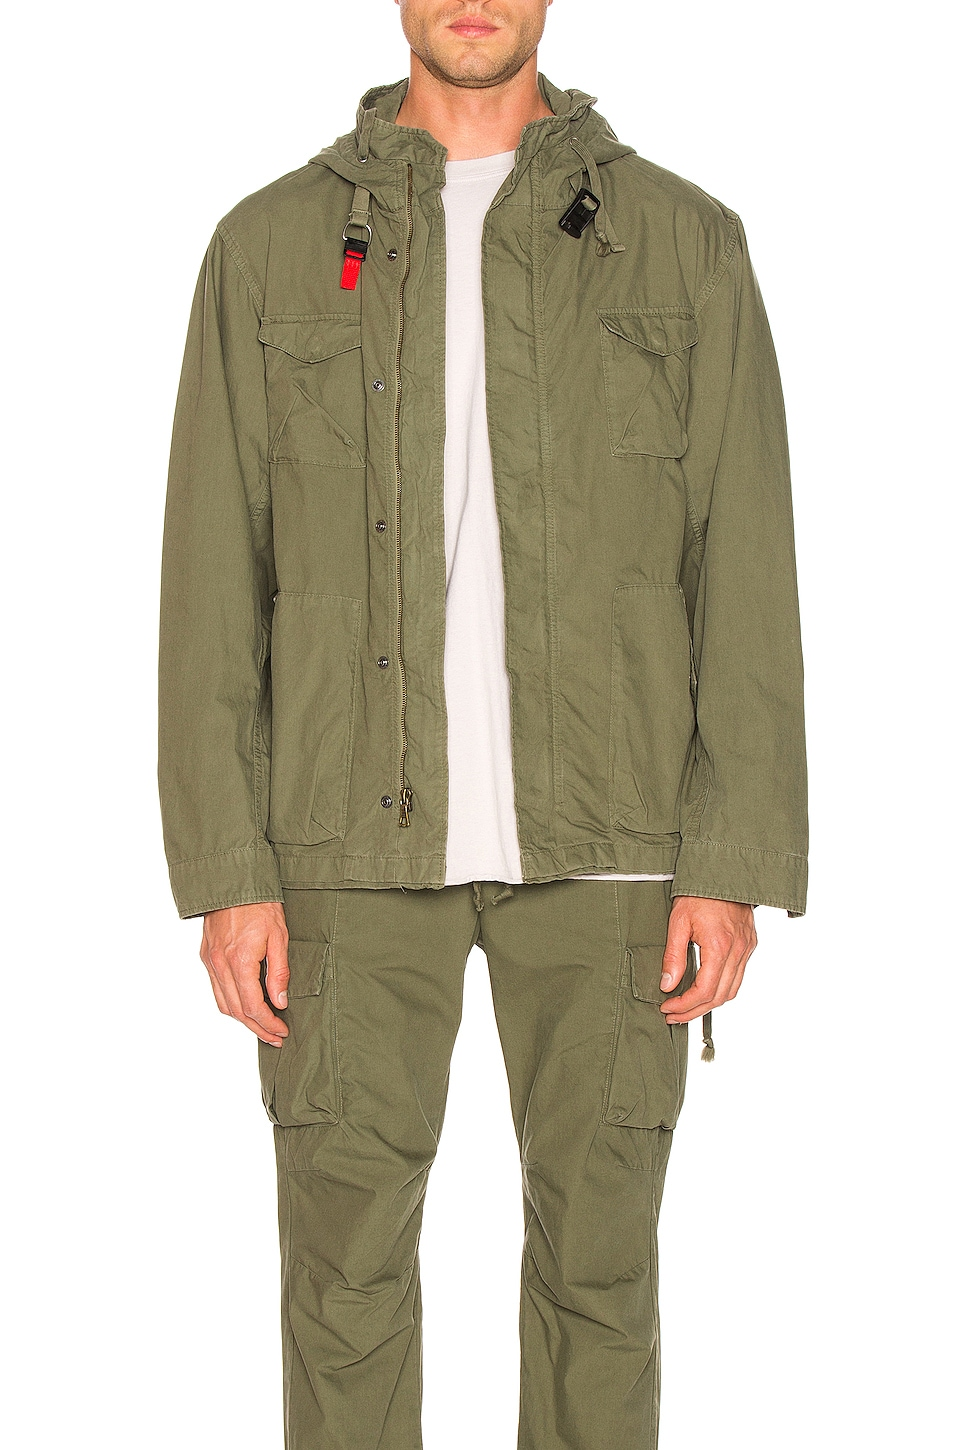 JOHN ELLIOTT Military Zip Field Jacket in Olive